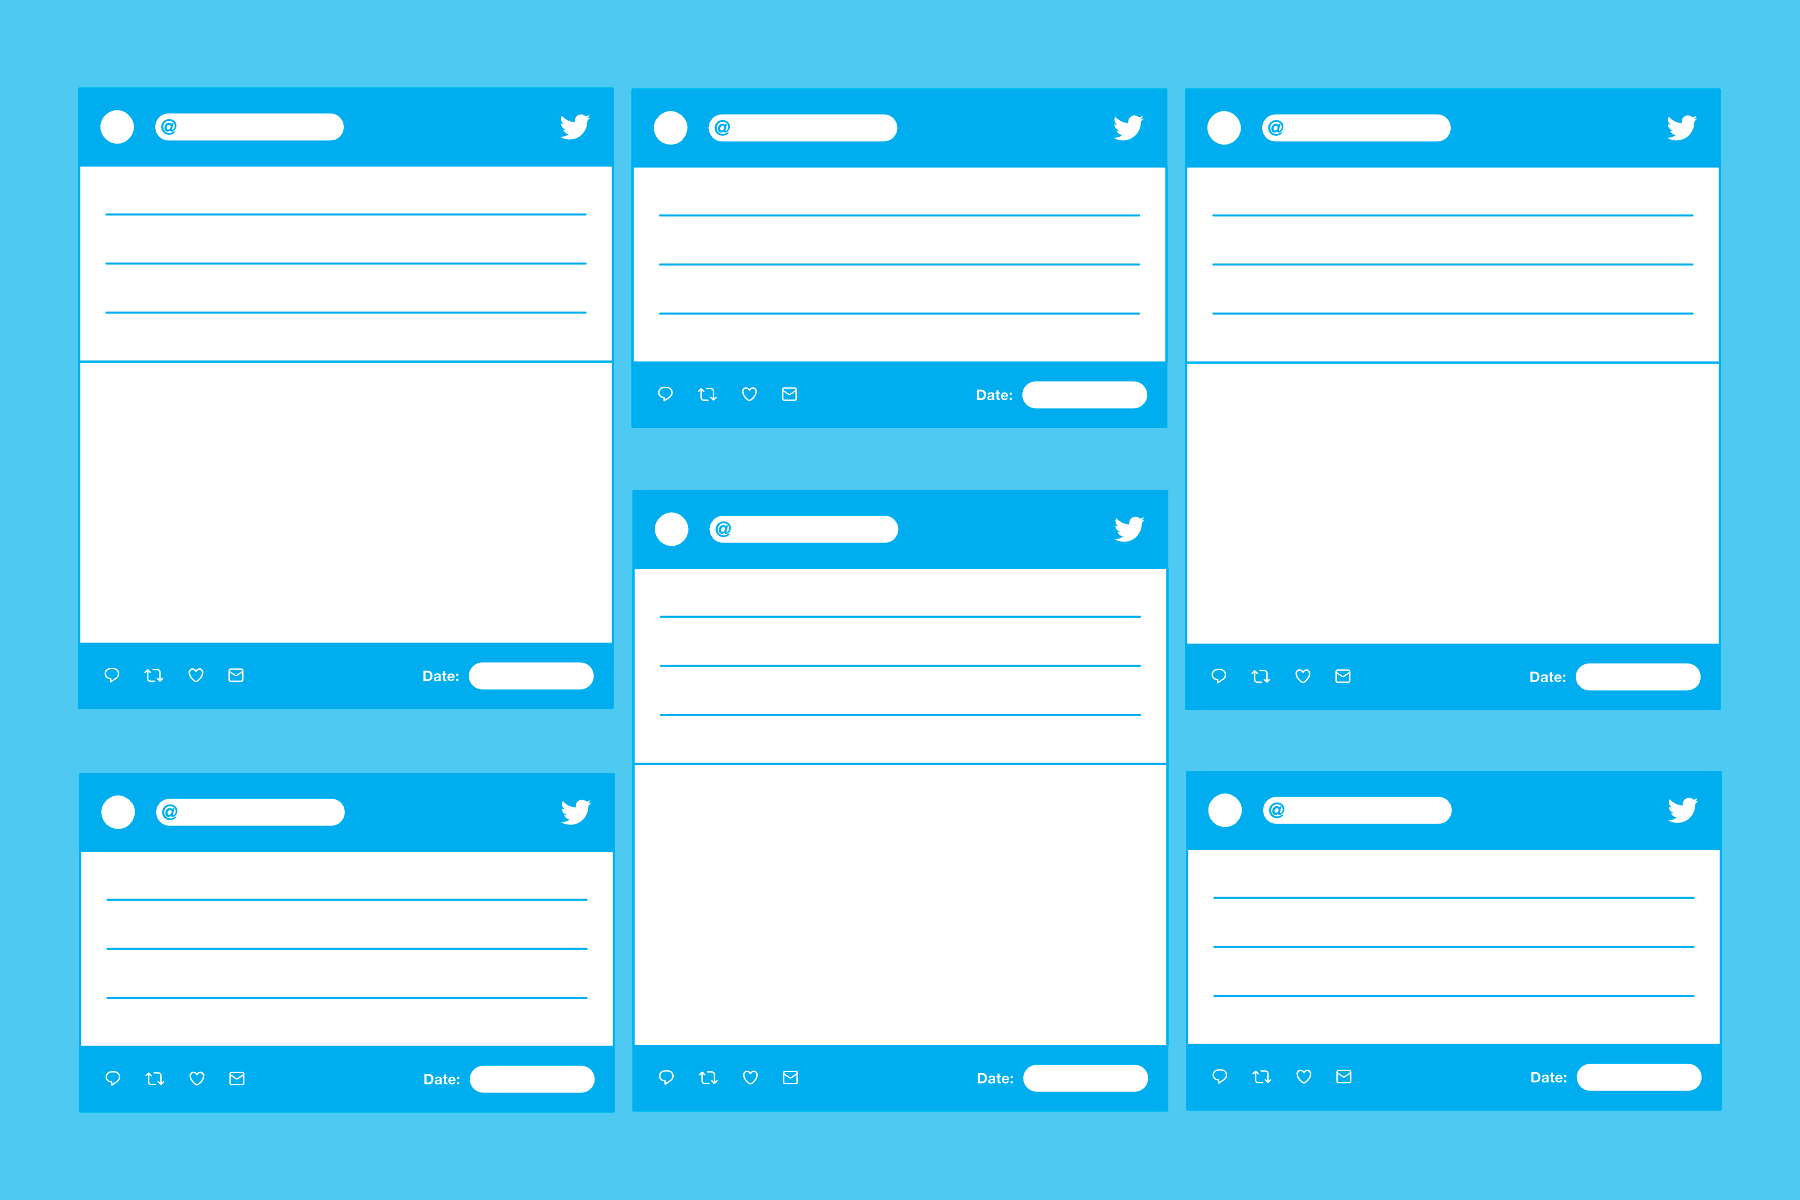 Irresistible image with printable twitter template